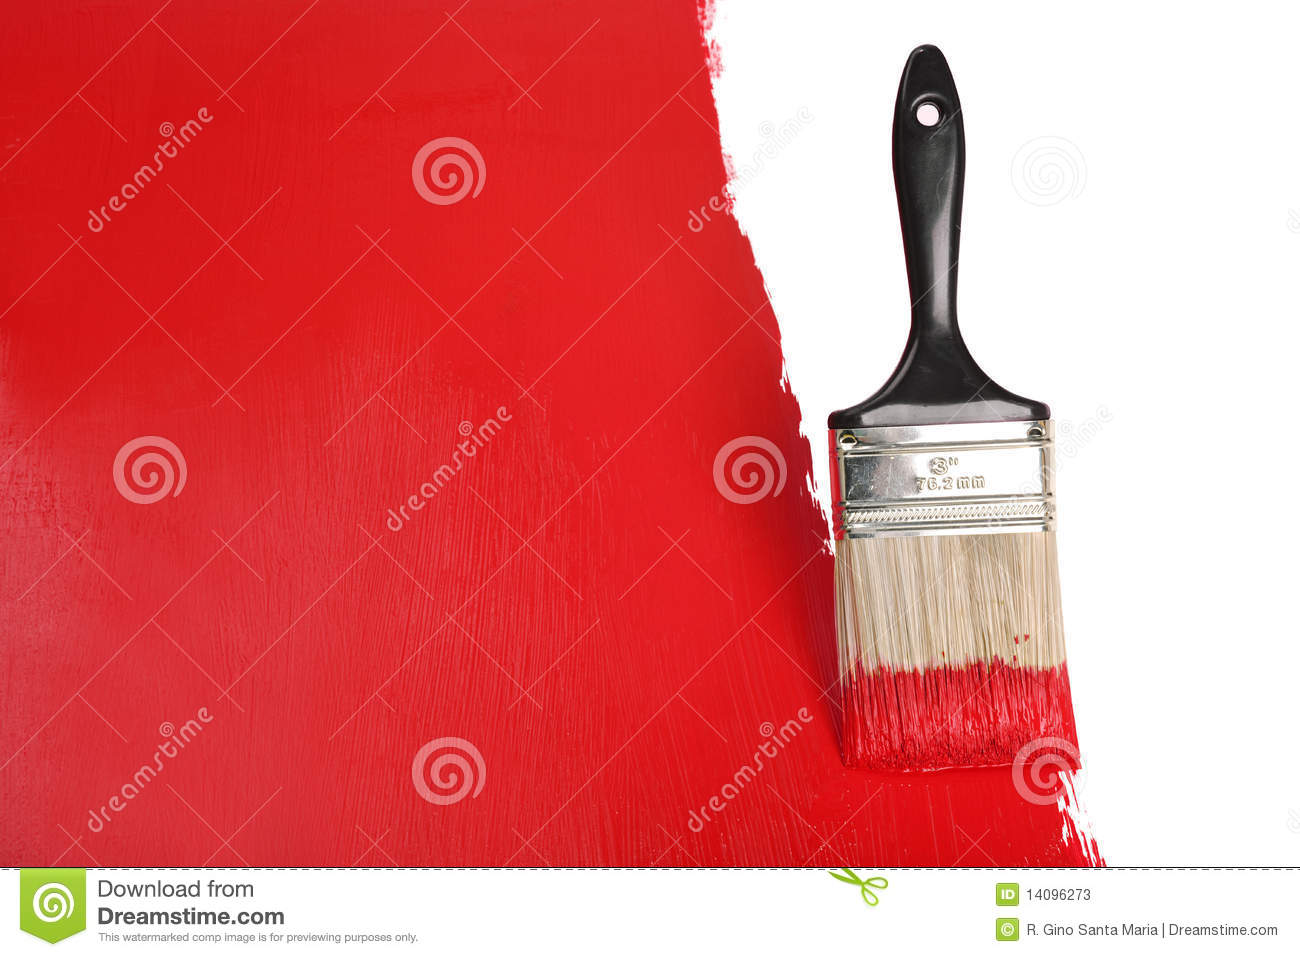 Brush Painting Wall With Red Paint